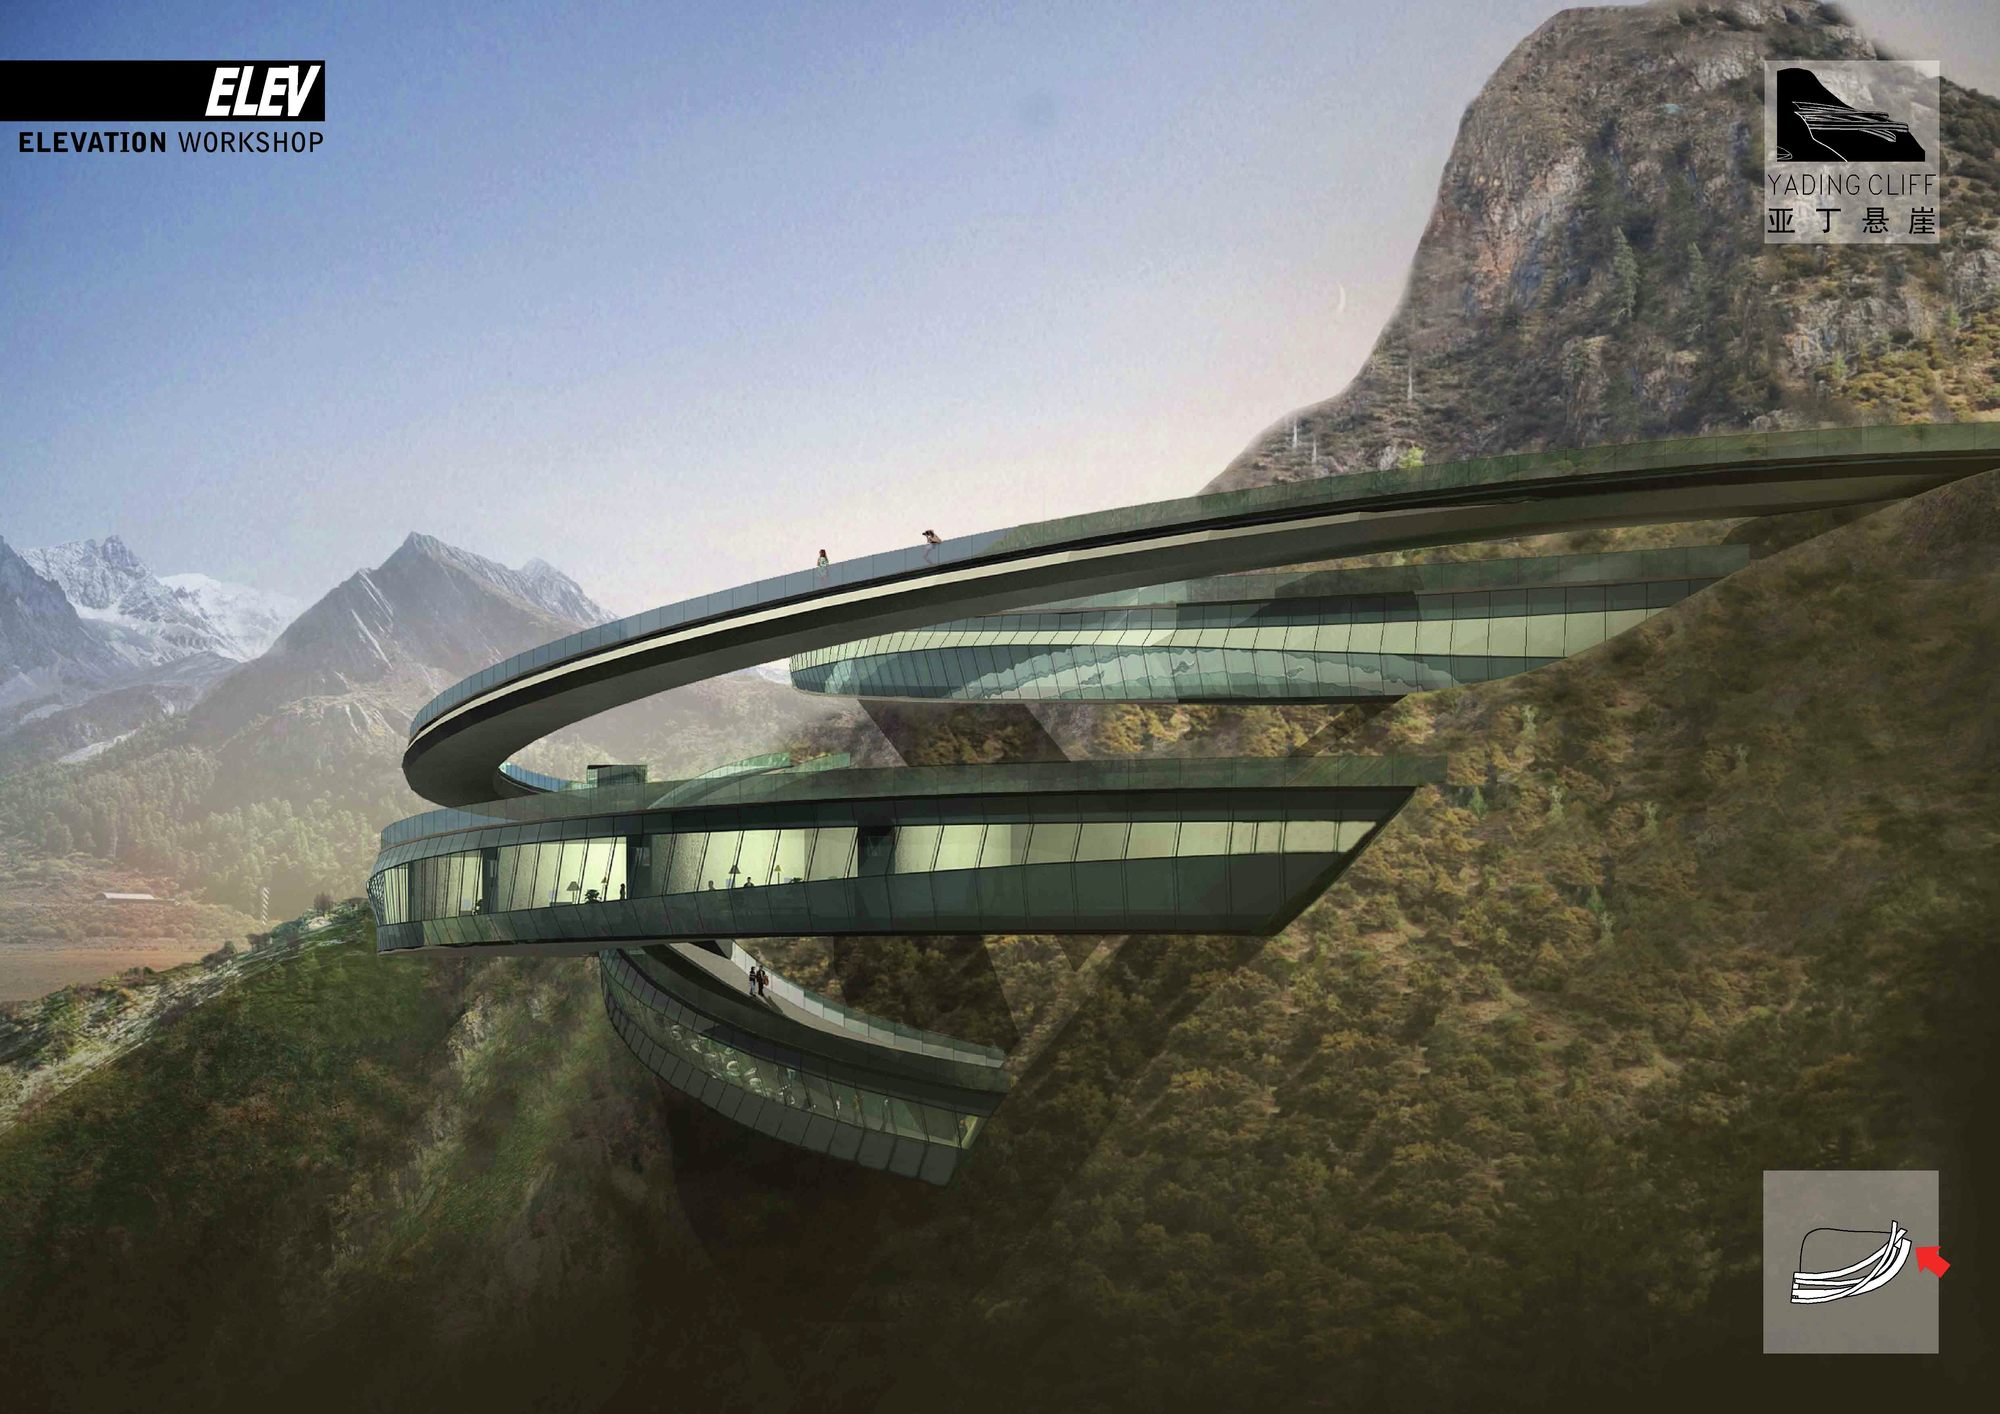 gallery of yading cliff building competition entry elev   11